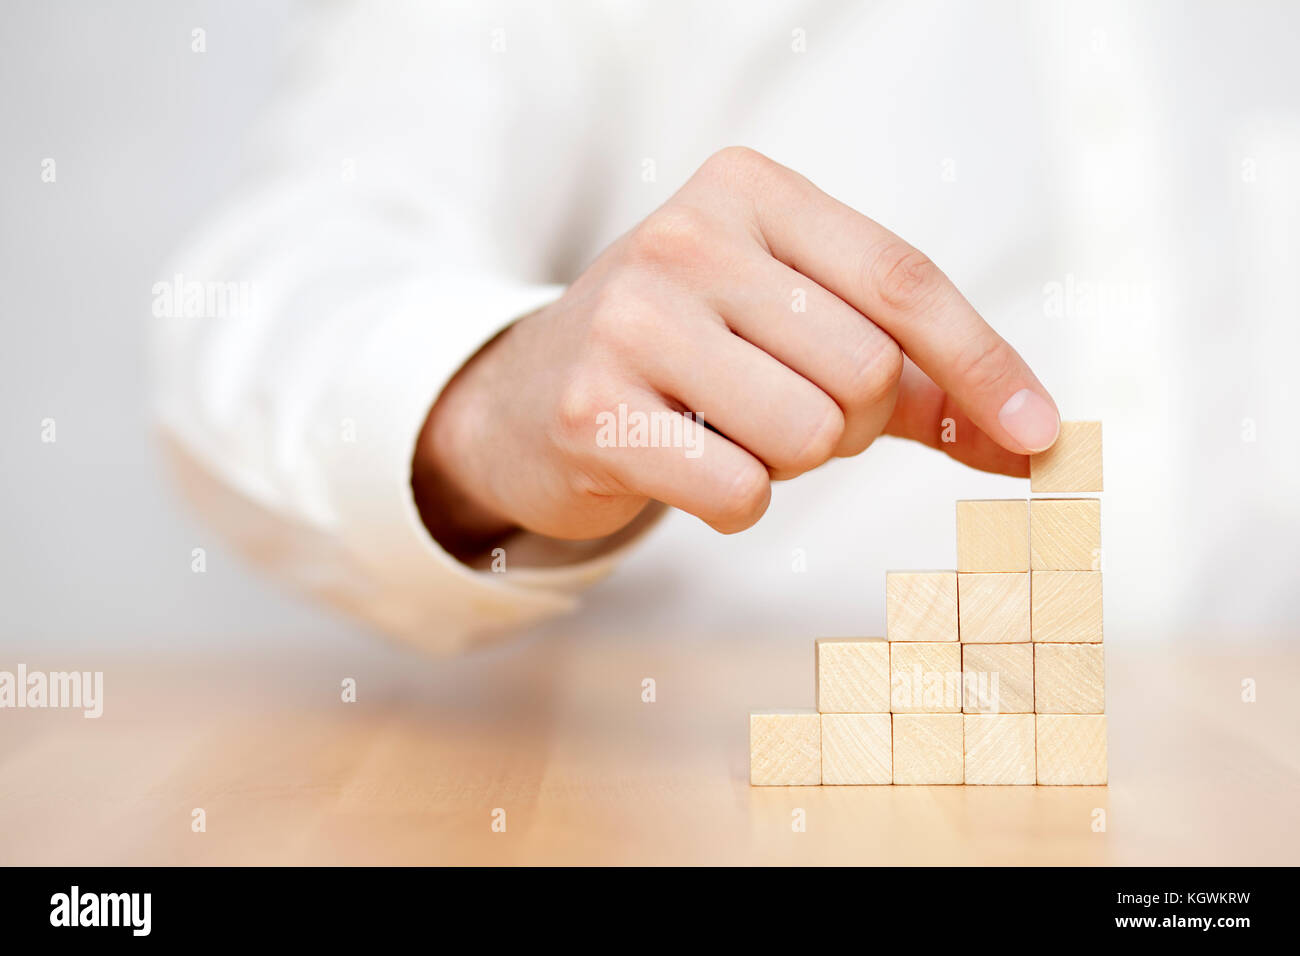 Man's hand put wooden blocks in the shape of a staircase. Business success concept. - Stock Image